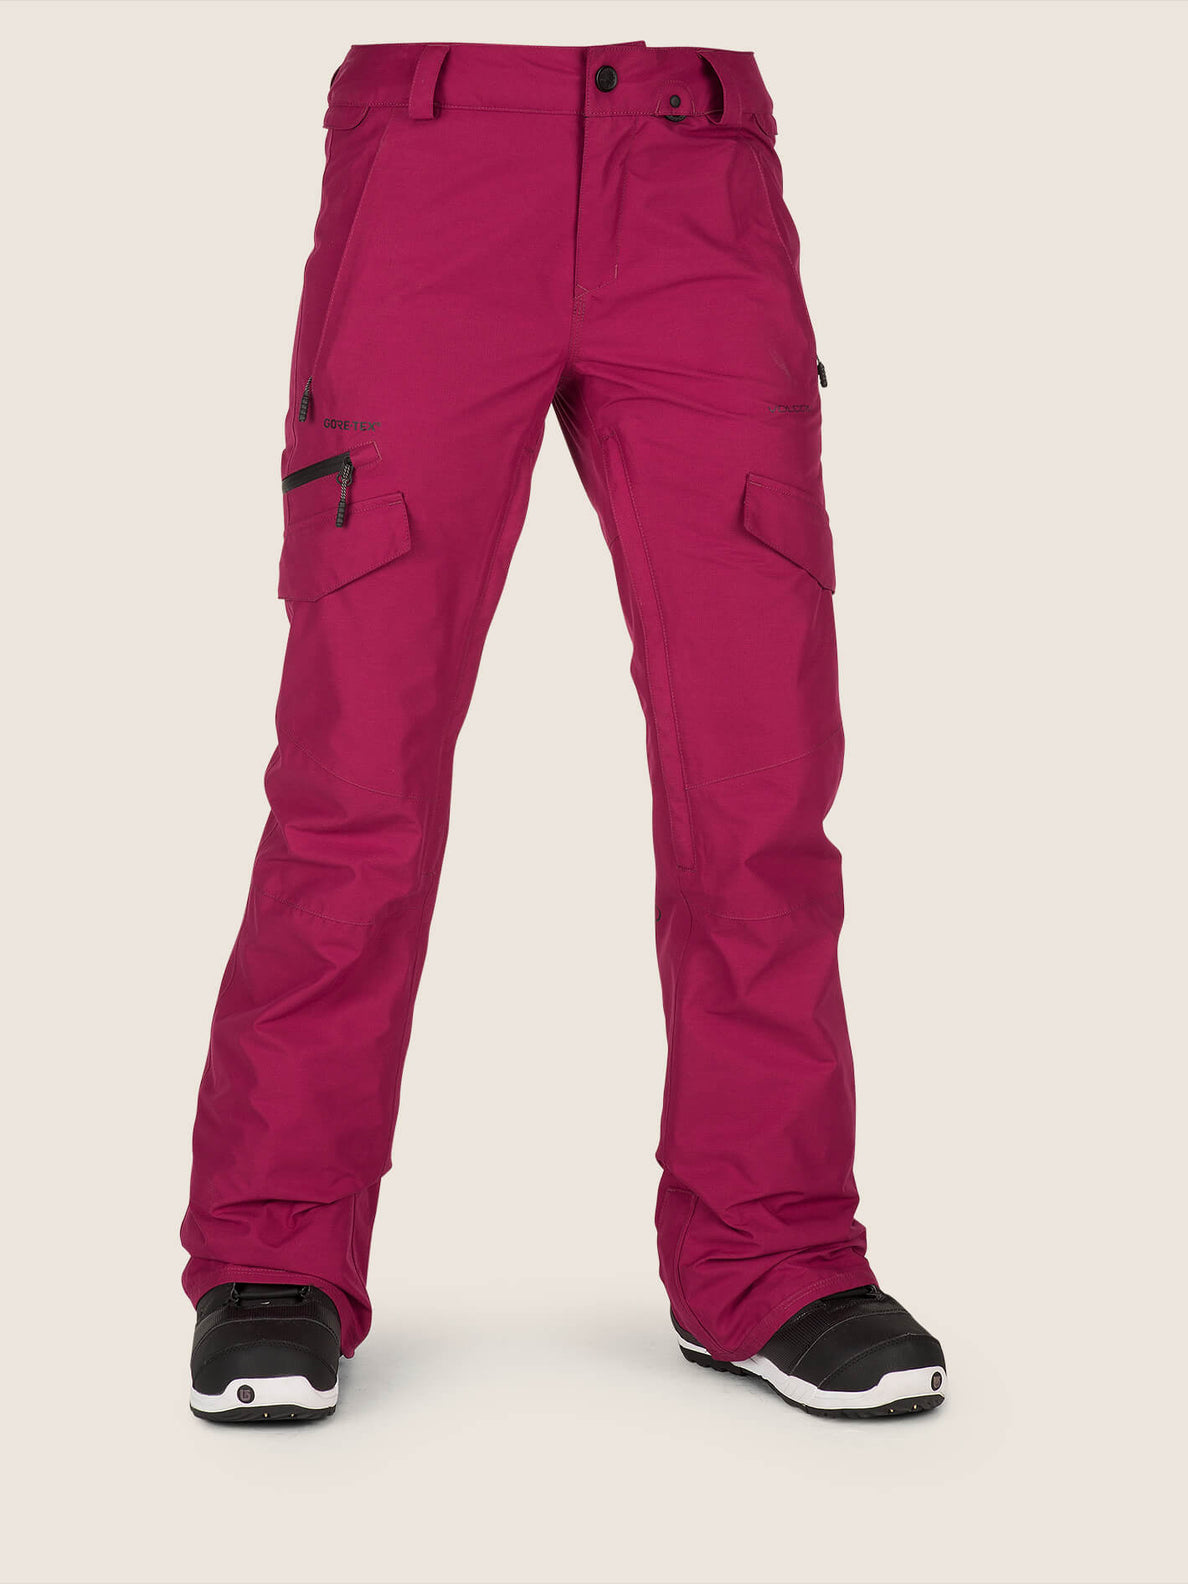 Aston Gore-tex Pant In Magenta, Front View